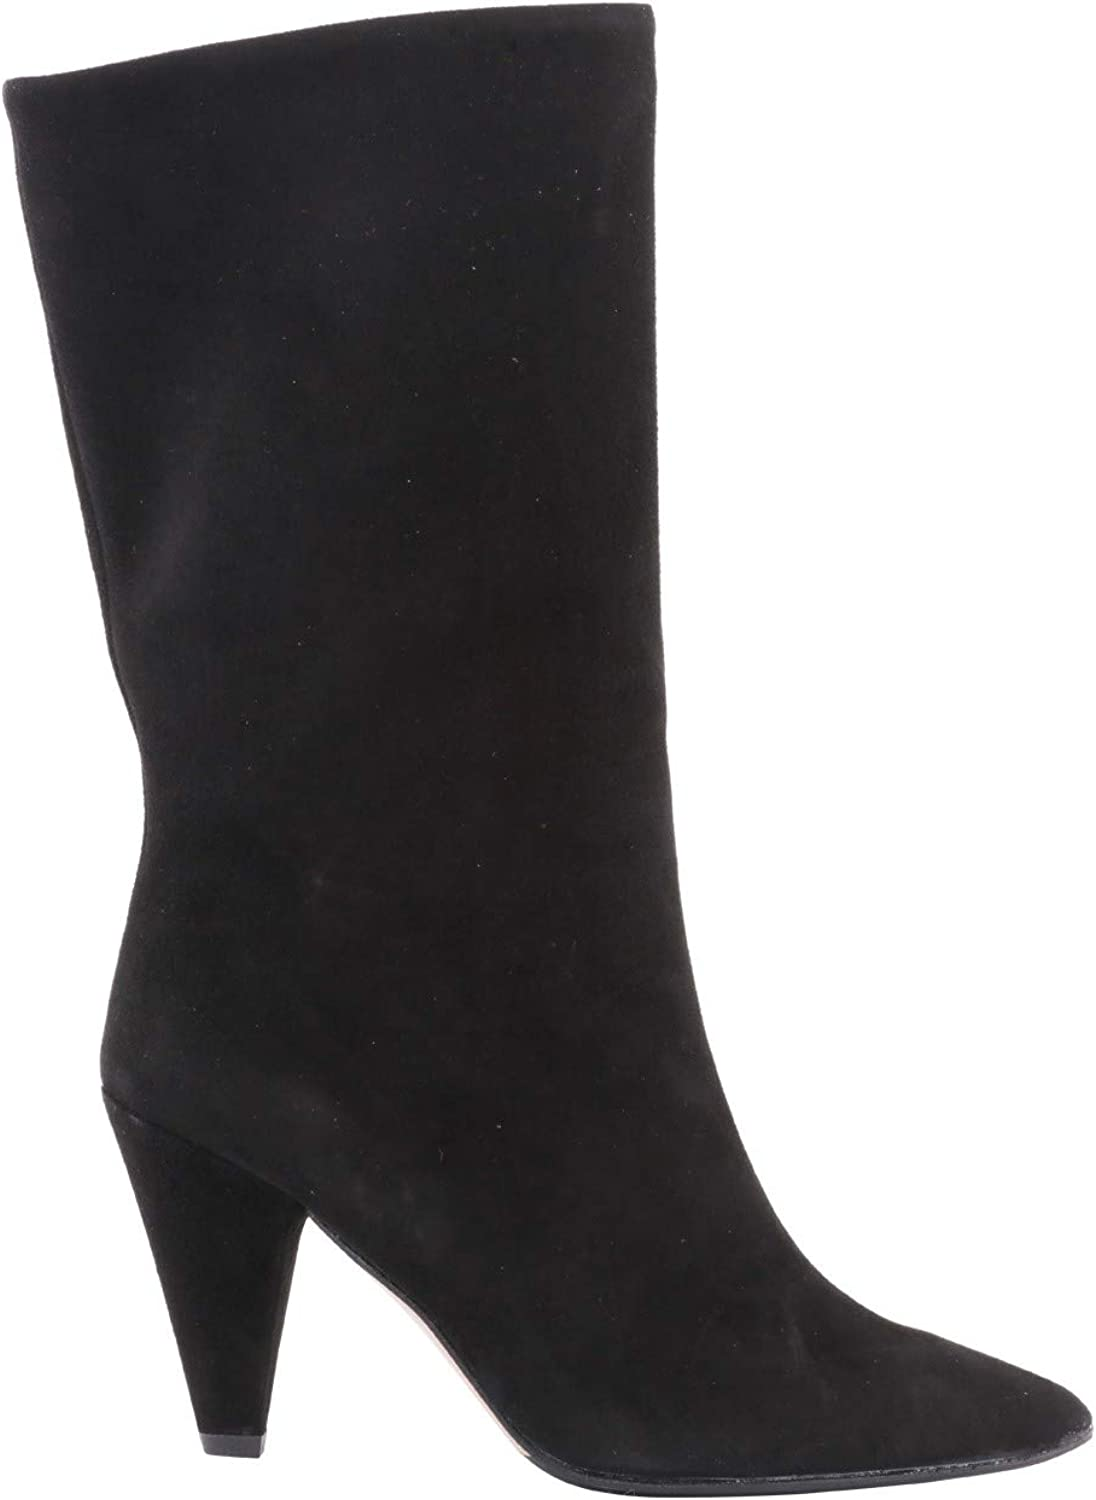 The The The Seller, Damen Stiefel & Stiefeletten  b86558